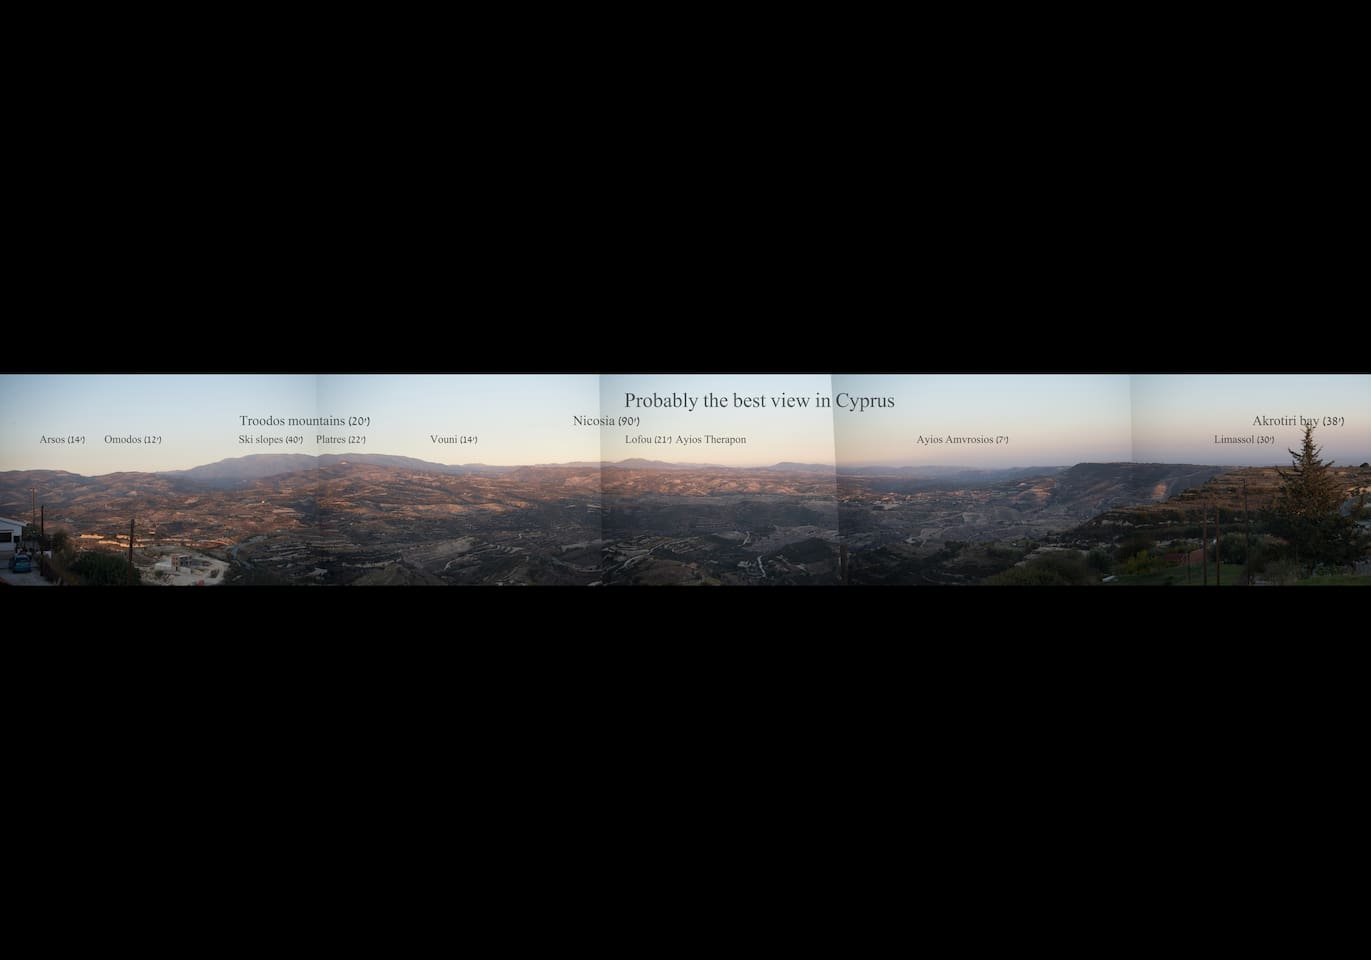 Probably the best view in Cyprus